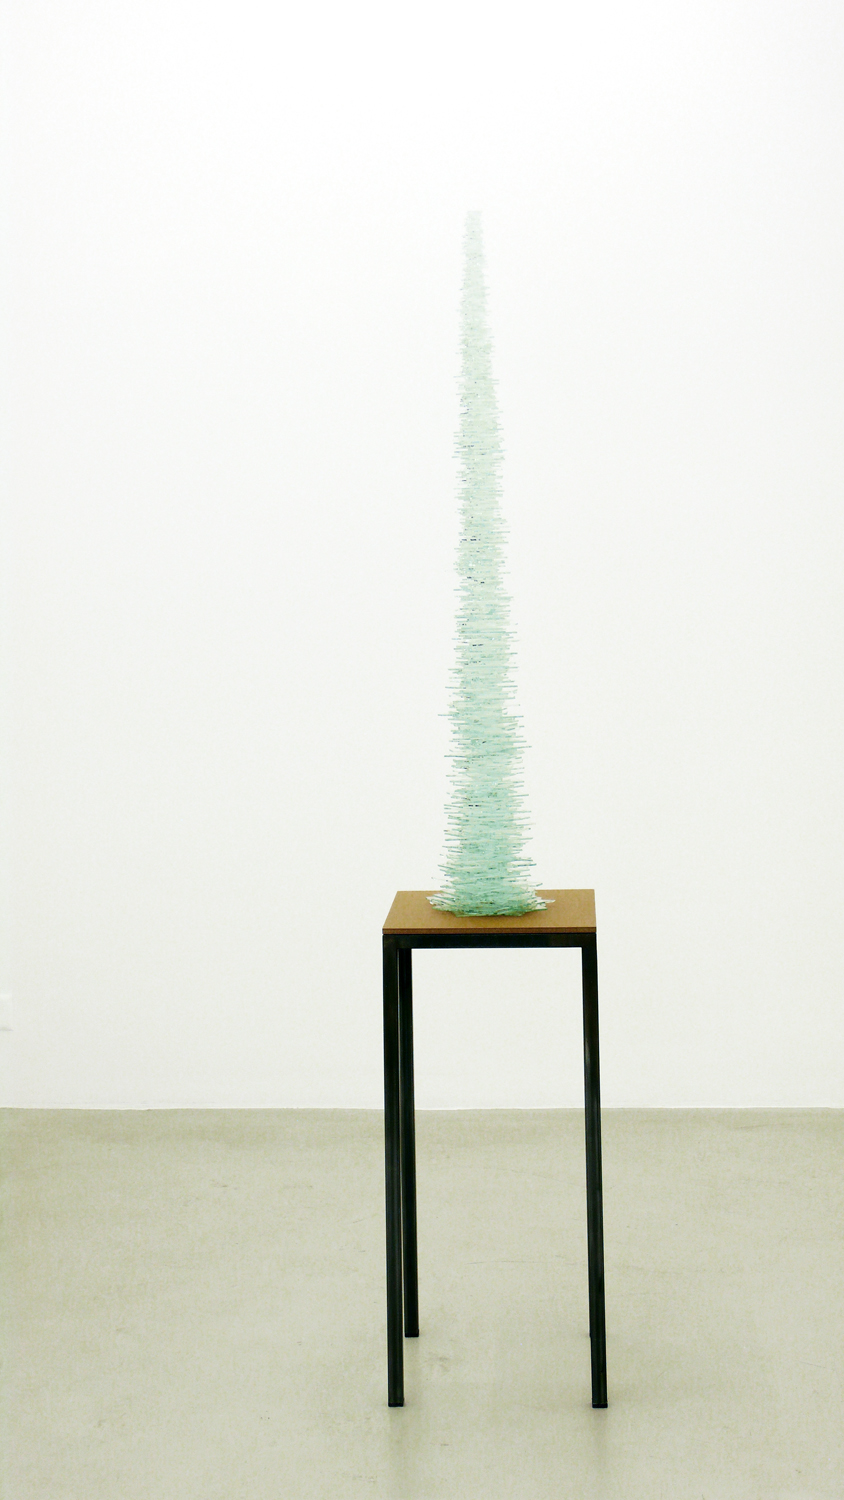 crystal silence l-lV   , 2011, wire, beads, dimensions variable  ; dust l  , 2011, pencil on paper, 110 x 86cm  ; rift  , 2011, plastic, textiles, dimensions variable    hyle, Lullin+Ferrari, Zürich